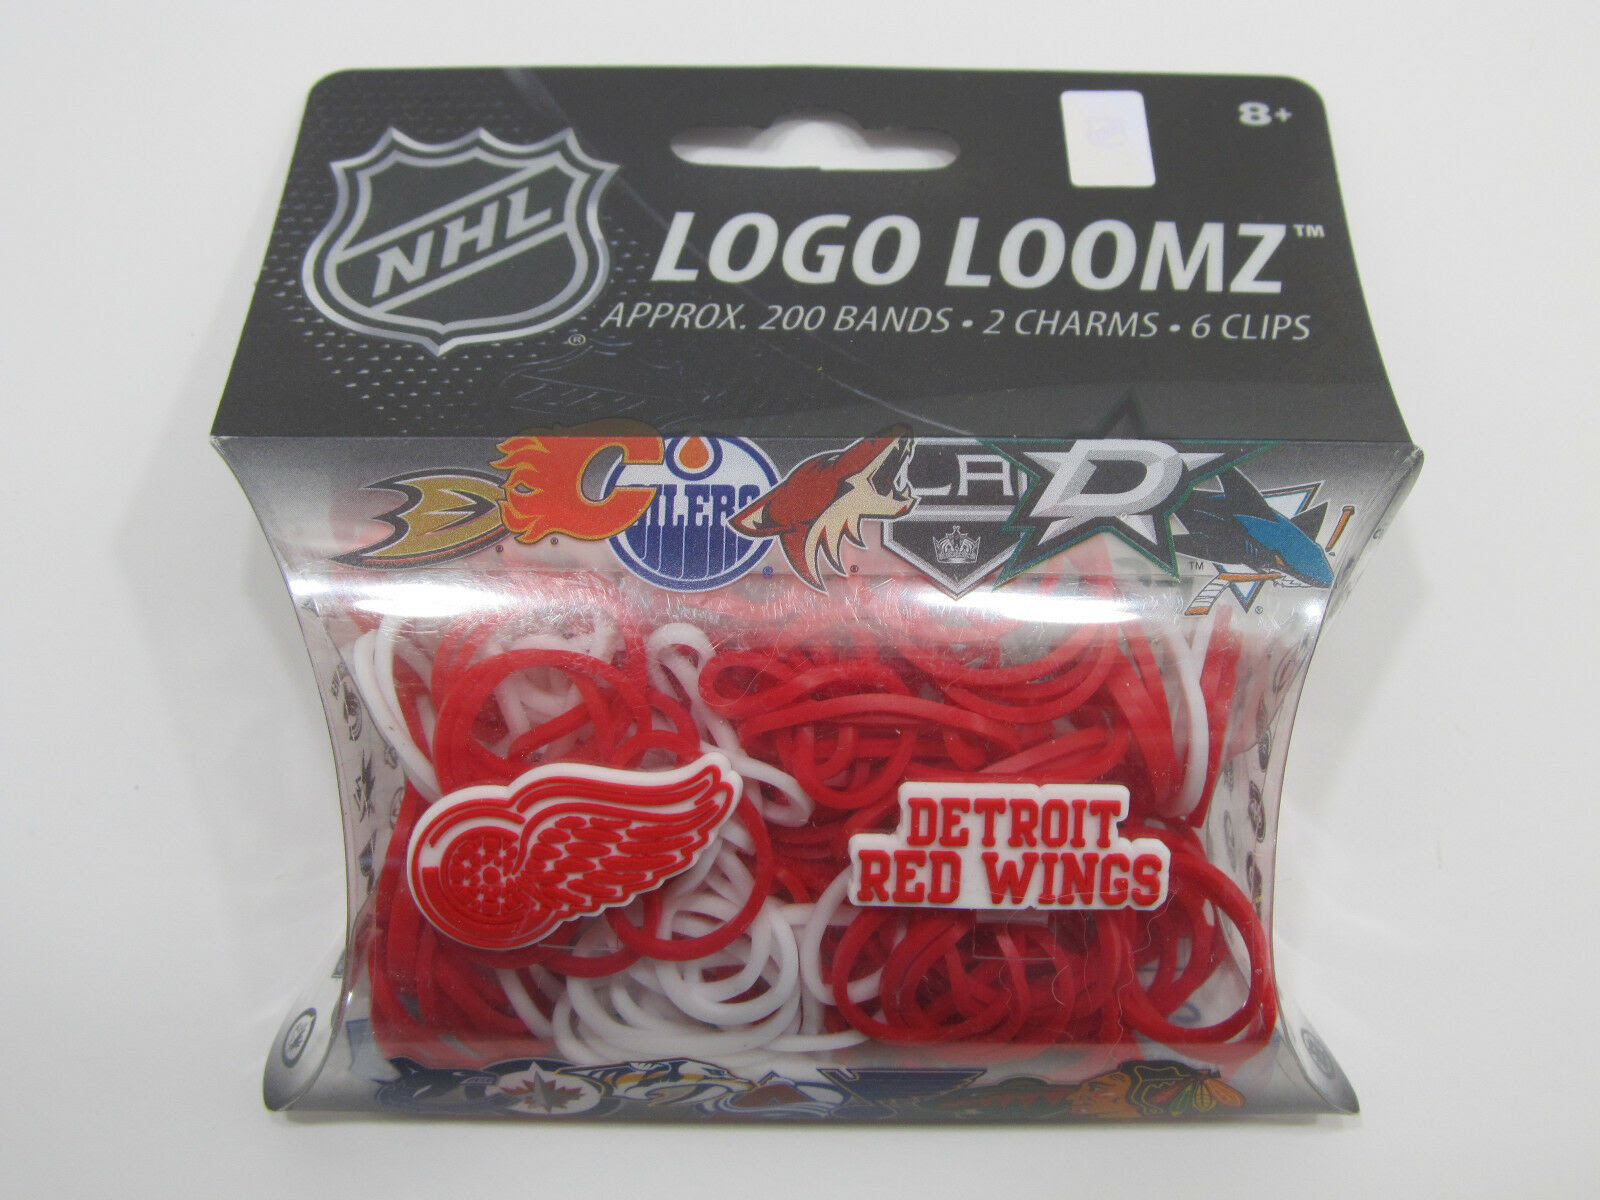 Nhl Detroit Red Wings Logo Loomz Charm Filler Pack By Forever